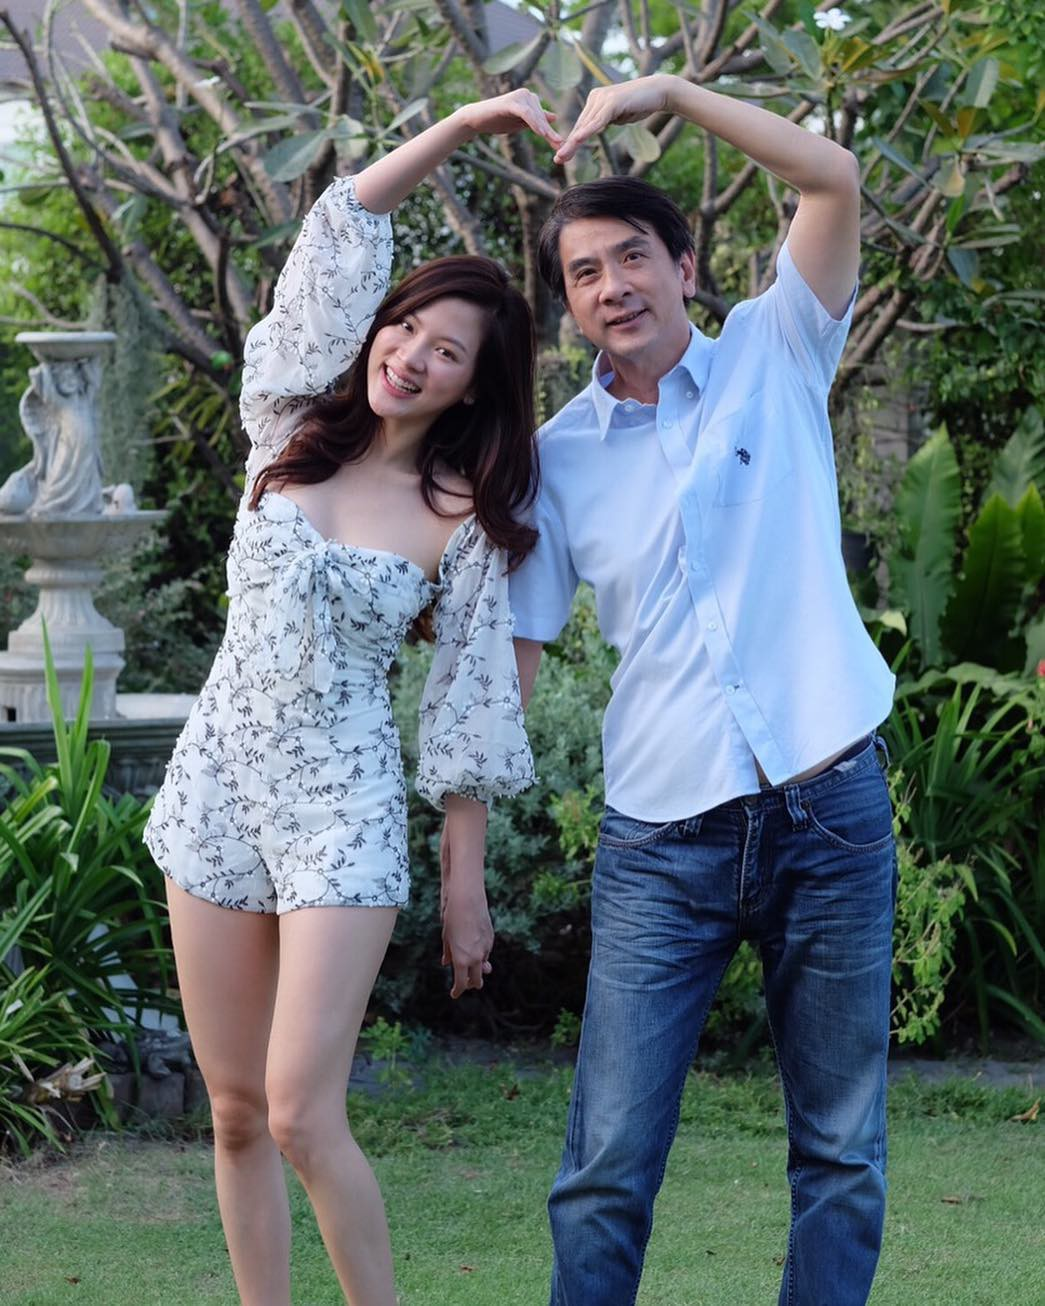 The beautiful family gene of beauty Baifern Flying Sheet: The beautiful boy is good, but his father is stunned - Photo 19.